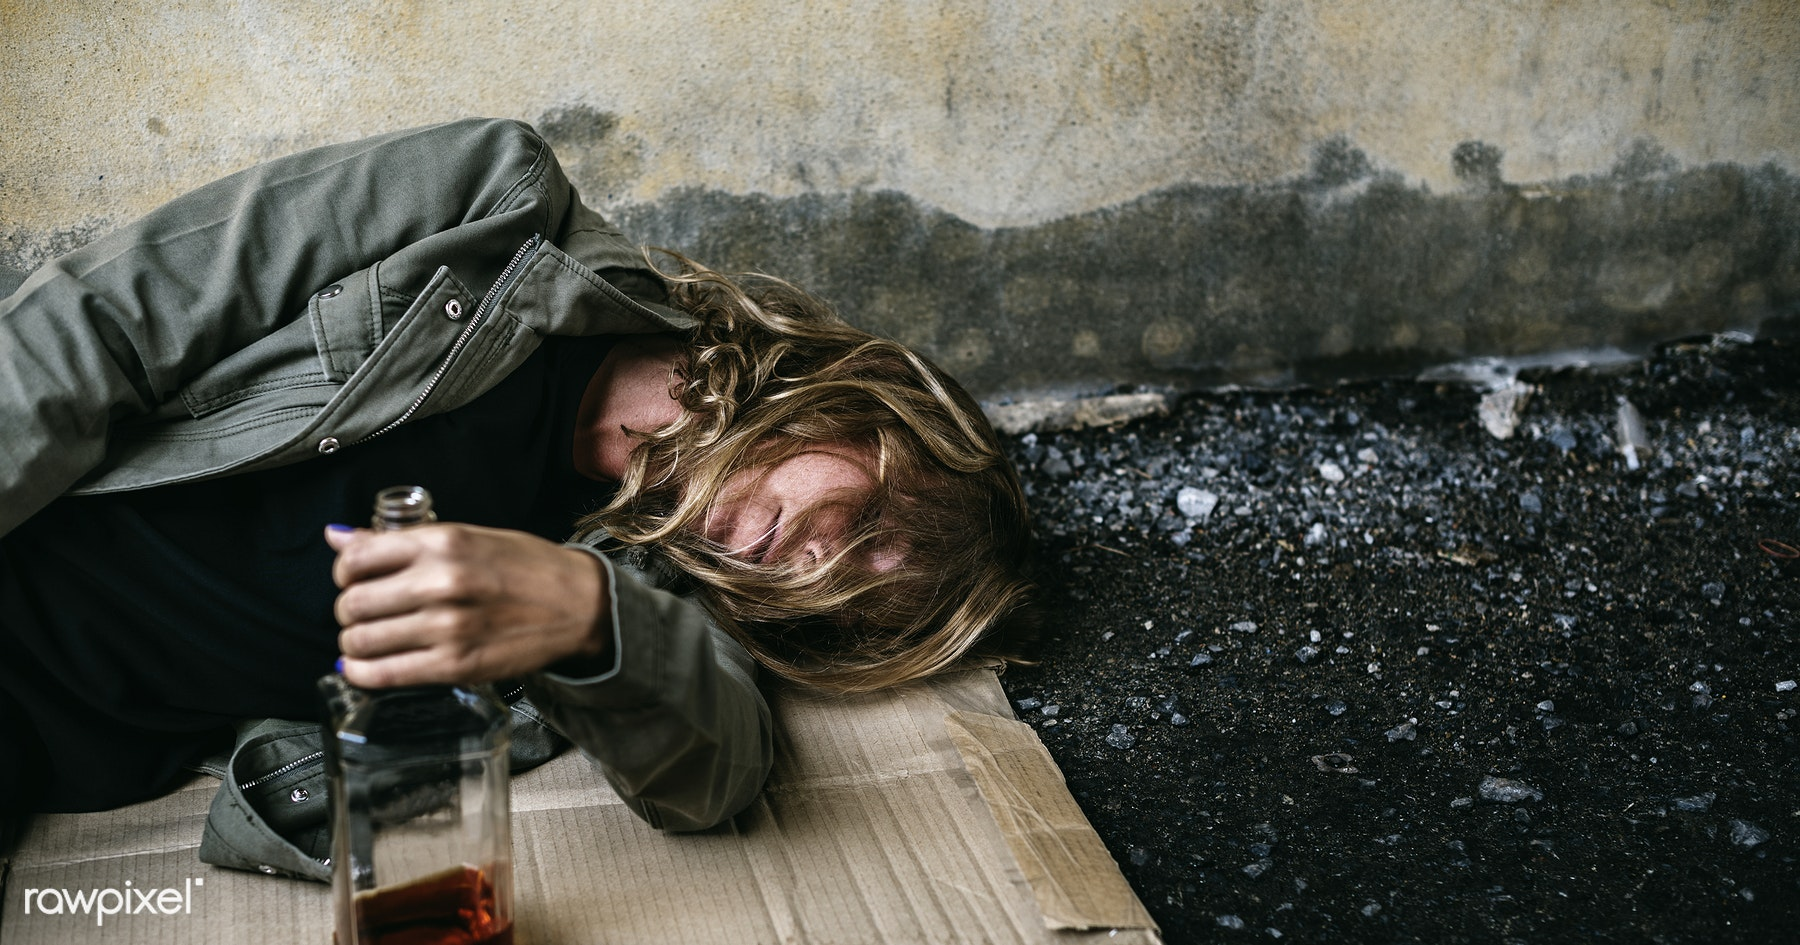 essays about alcohol in teenagers Essay on alcohol abuse in teenagers teenagers try alcohol for the first time everyday teenagers experience the pressures of everyday life therefore, some teens may begin to drink to cope with the stress.